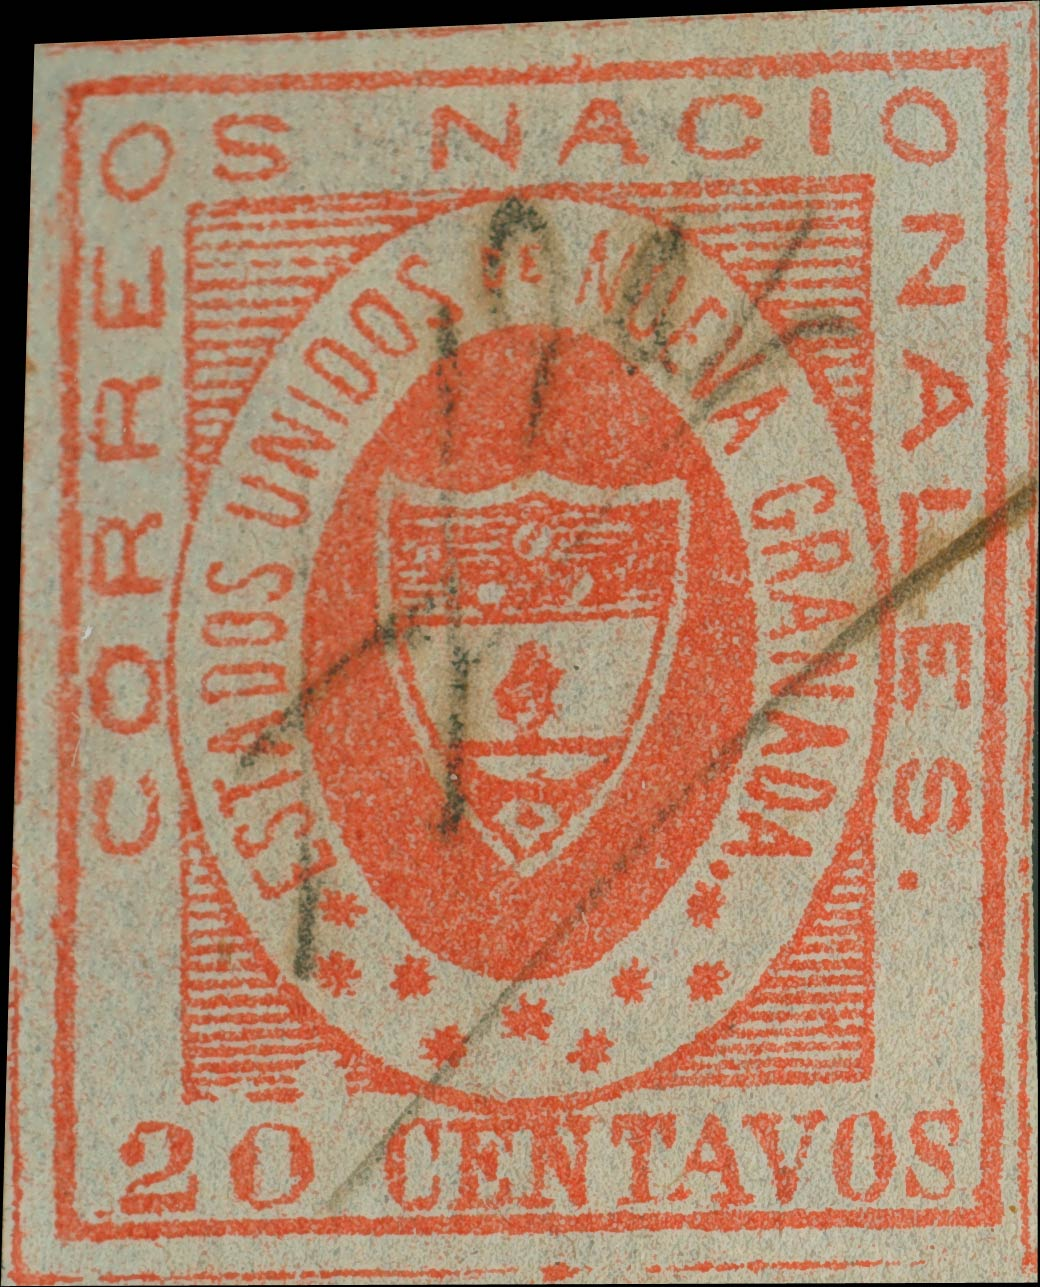 Colombia_1861_Coat_of_Arms_20_centavos_Sperati_Forgery